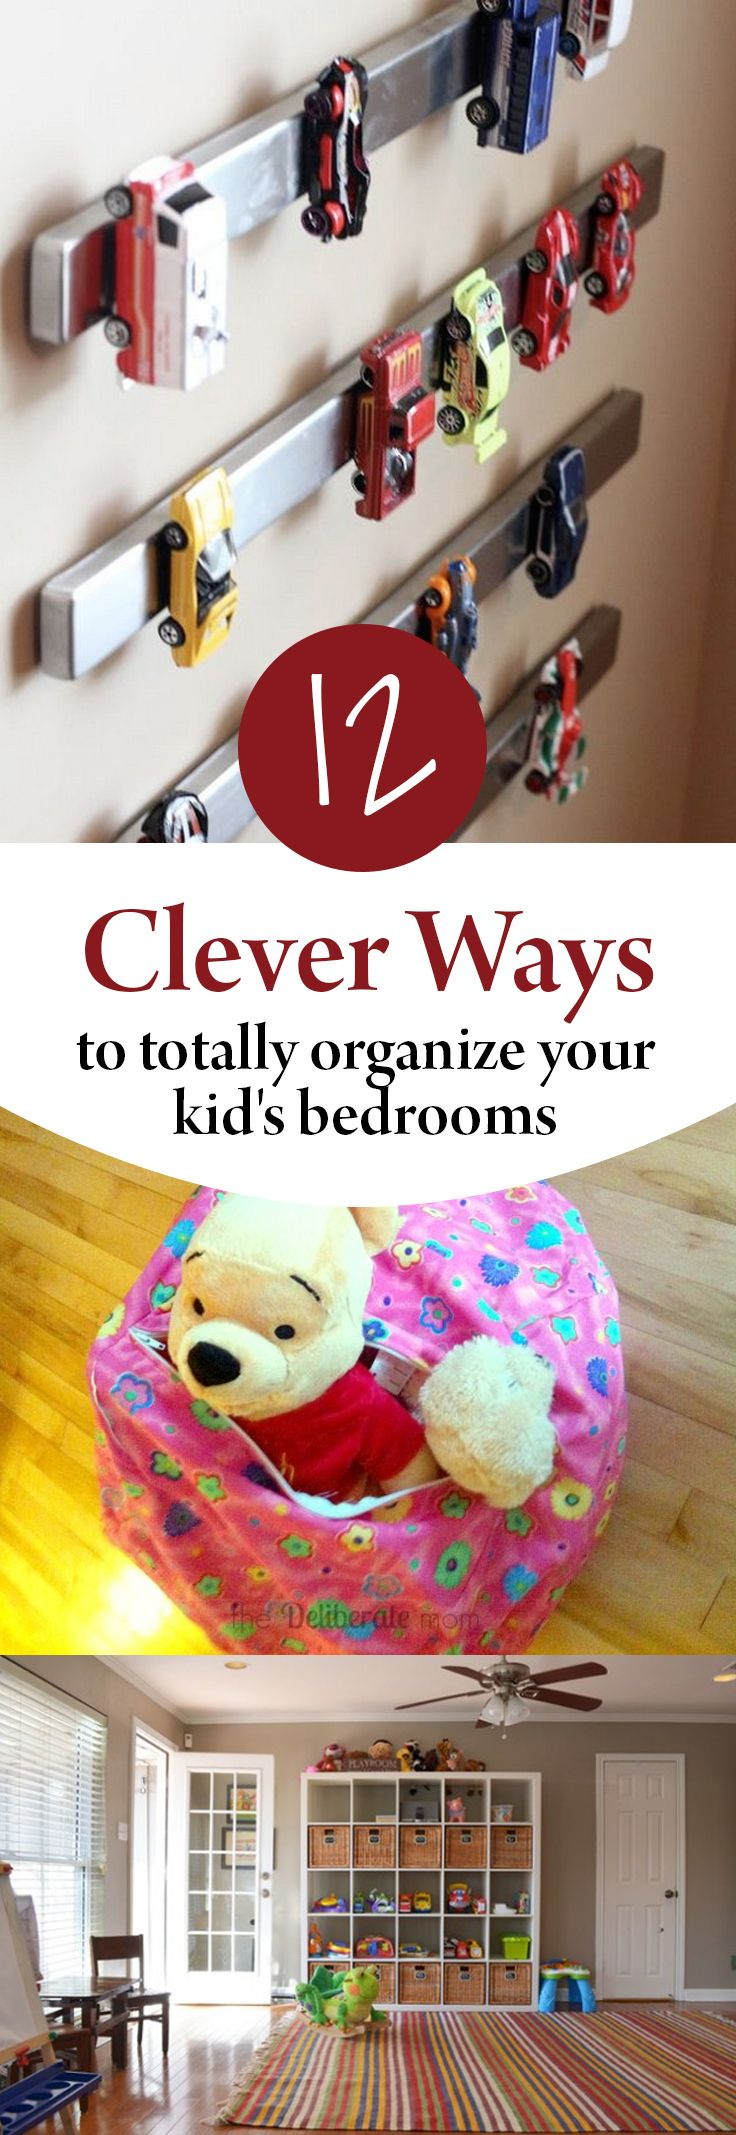 12 Clever Ways to Totally Organize Your Kid's Bedrooms is part of Kids bedroom Organization - How to organize your kids bedrooms